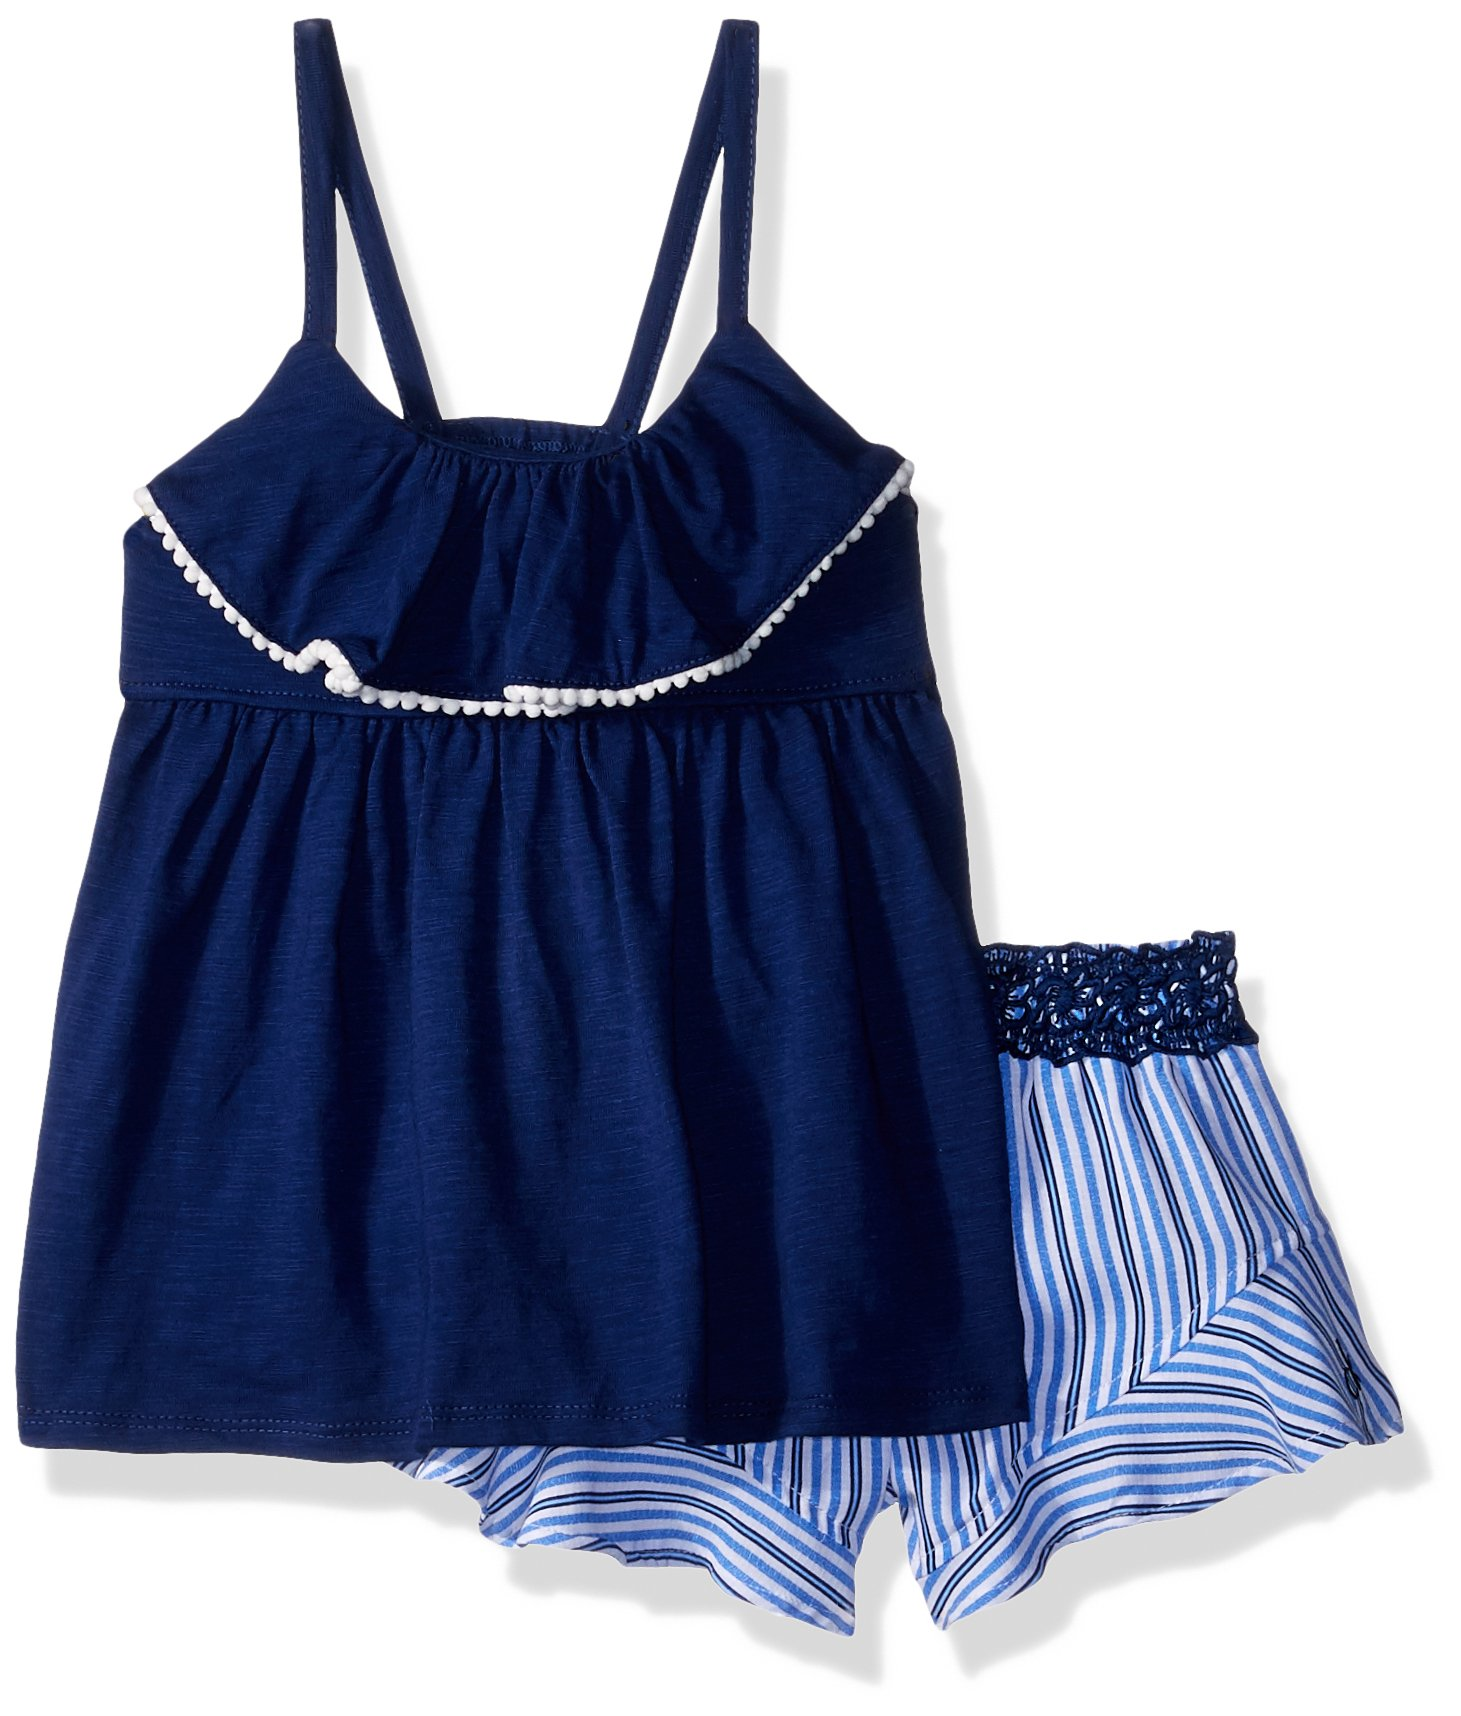 Calvin Klein Big Girls' Flounce Shorts Set, Navy/Stripes, 8/10